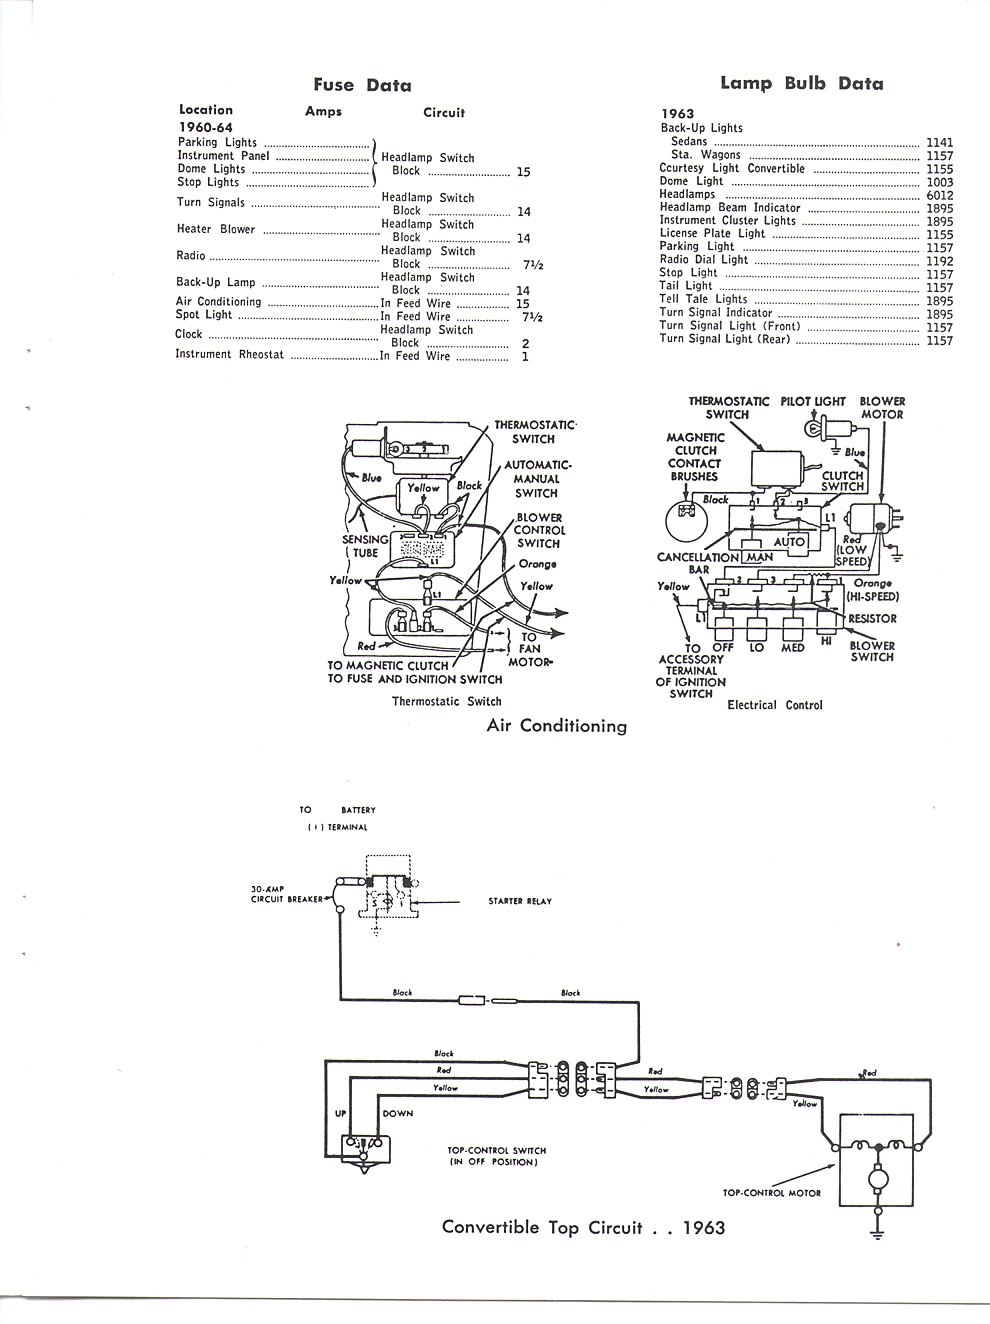 hight resolution of complete wiring diagram for a 1963 falcon figure 1 falcon diagrams